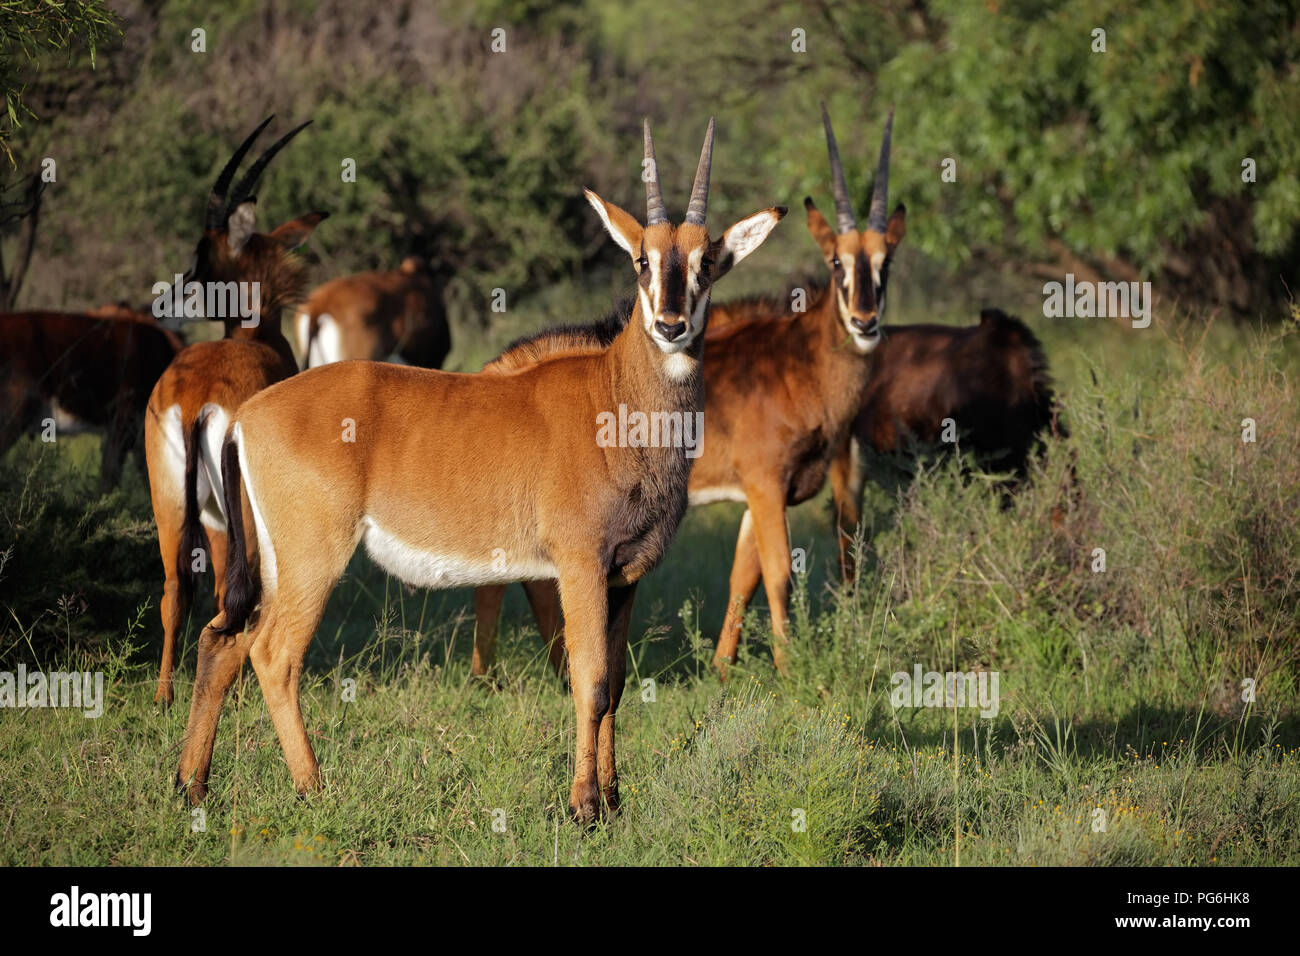 A family group of sable antelopes (Hippotragus niger) in natural habitat, South Africa - Stock Image